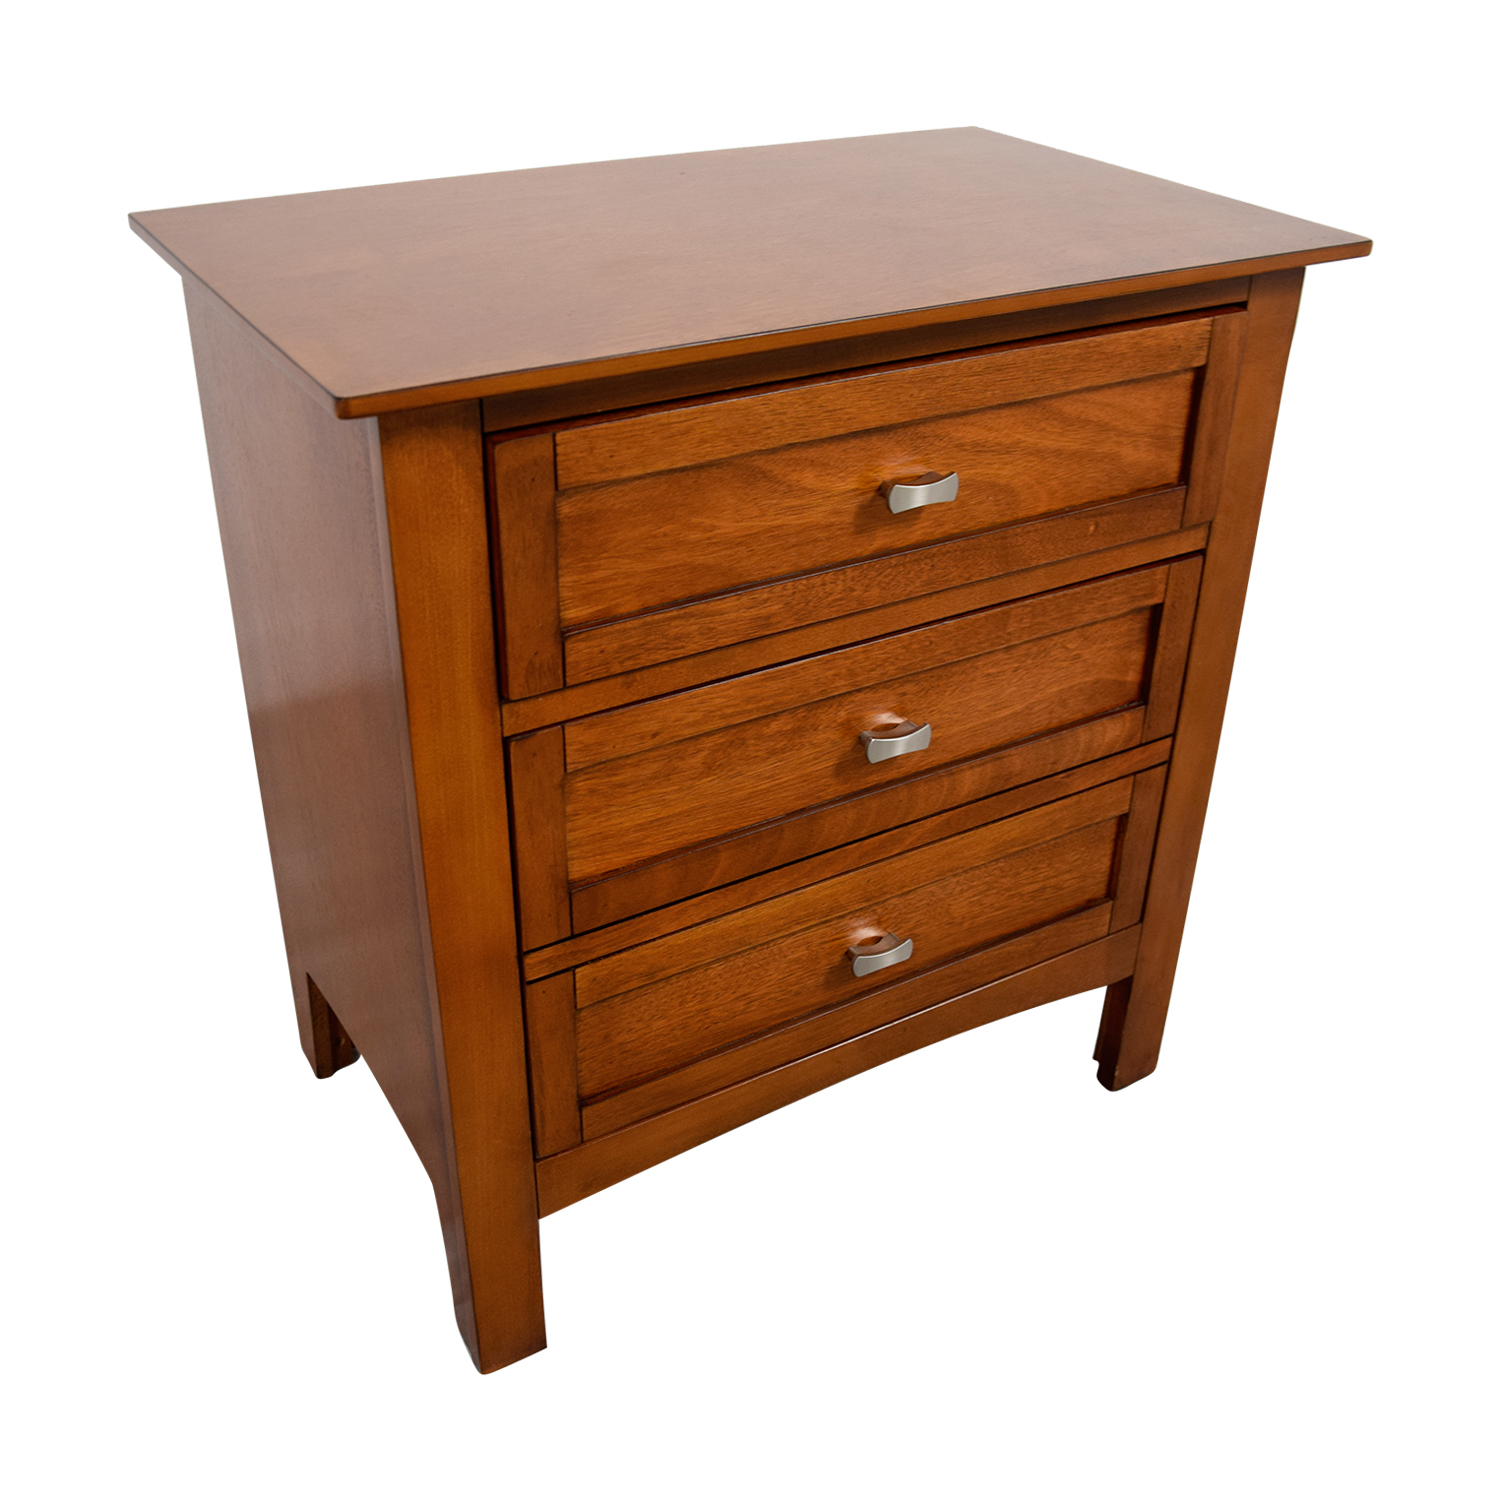 78 Off Bob 39 S Furniture Bob 39 S Furniture Three Drawer Night Stand Tables